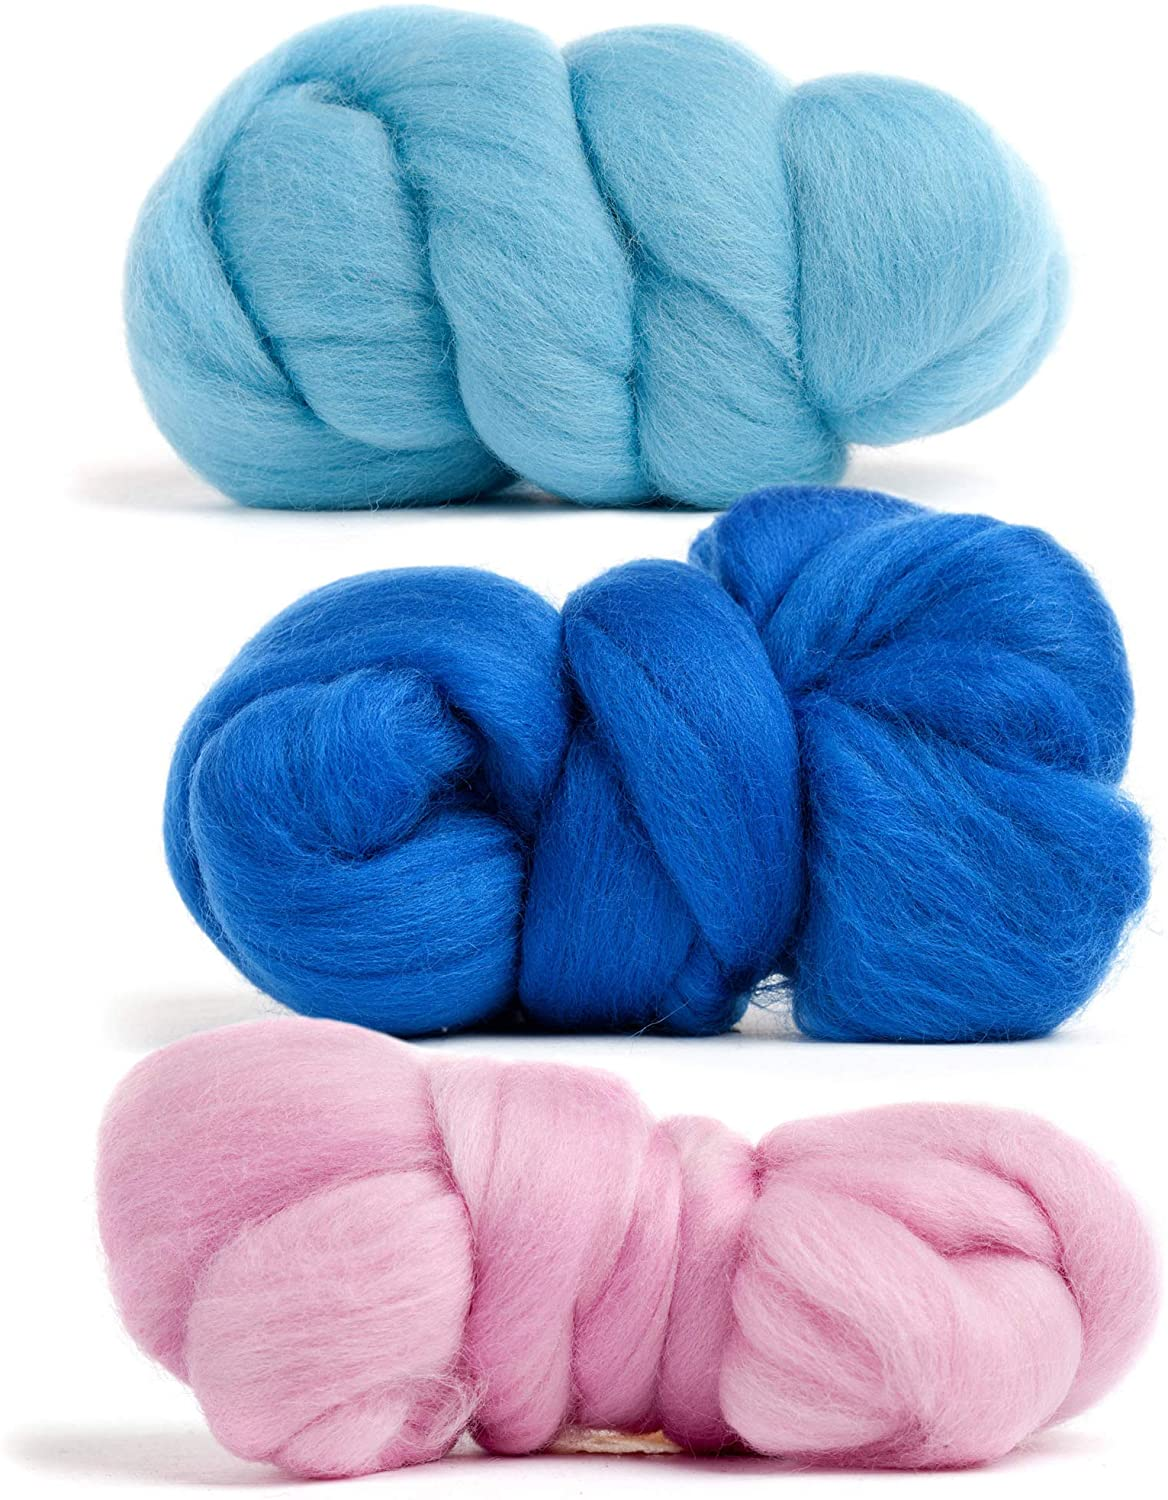 Merino Wool Roving, Premium Combed Top, 3 Colors - Pink, Aqua, Blue, 1 OZ Each, 21.5 Micron, 100% Pure Wool, Made in The UK